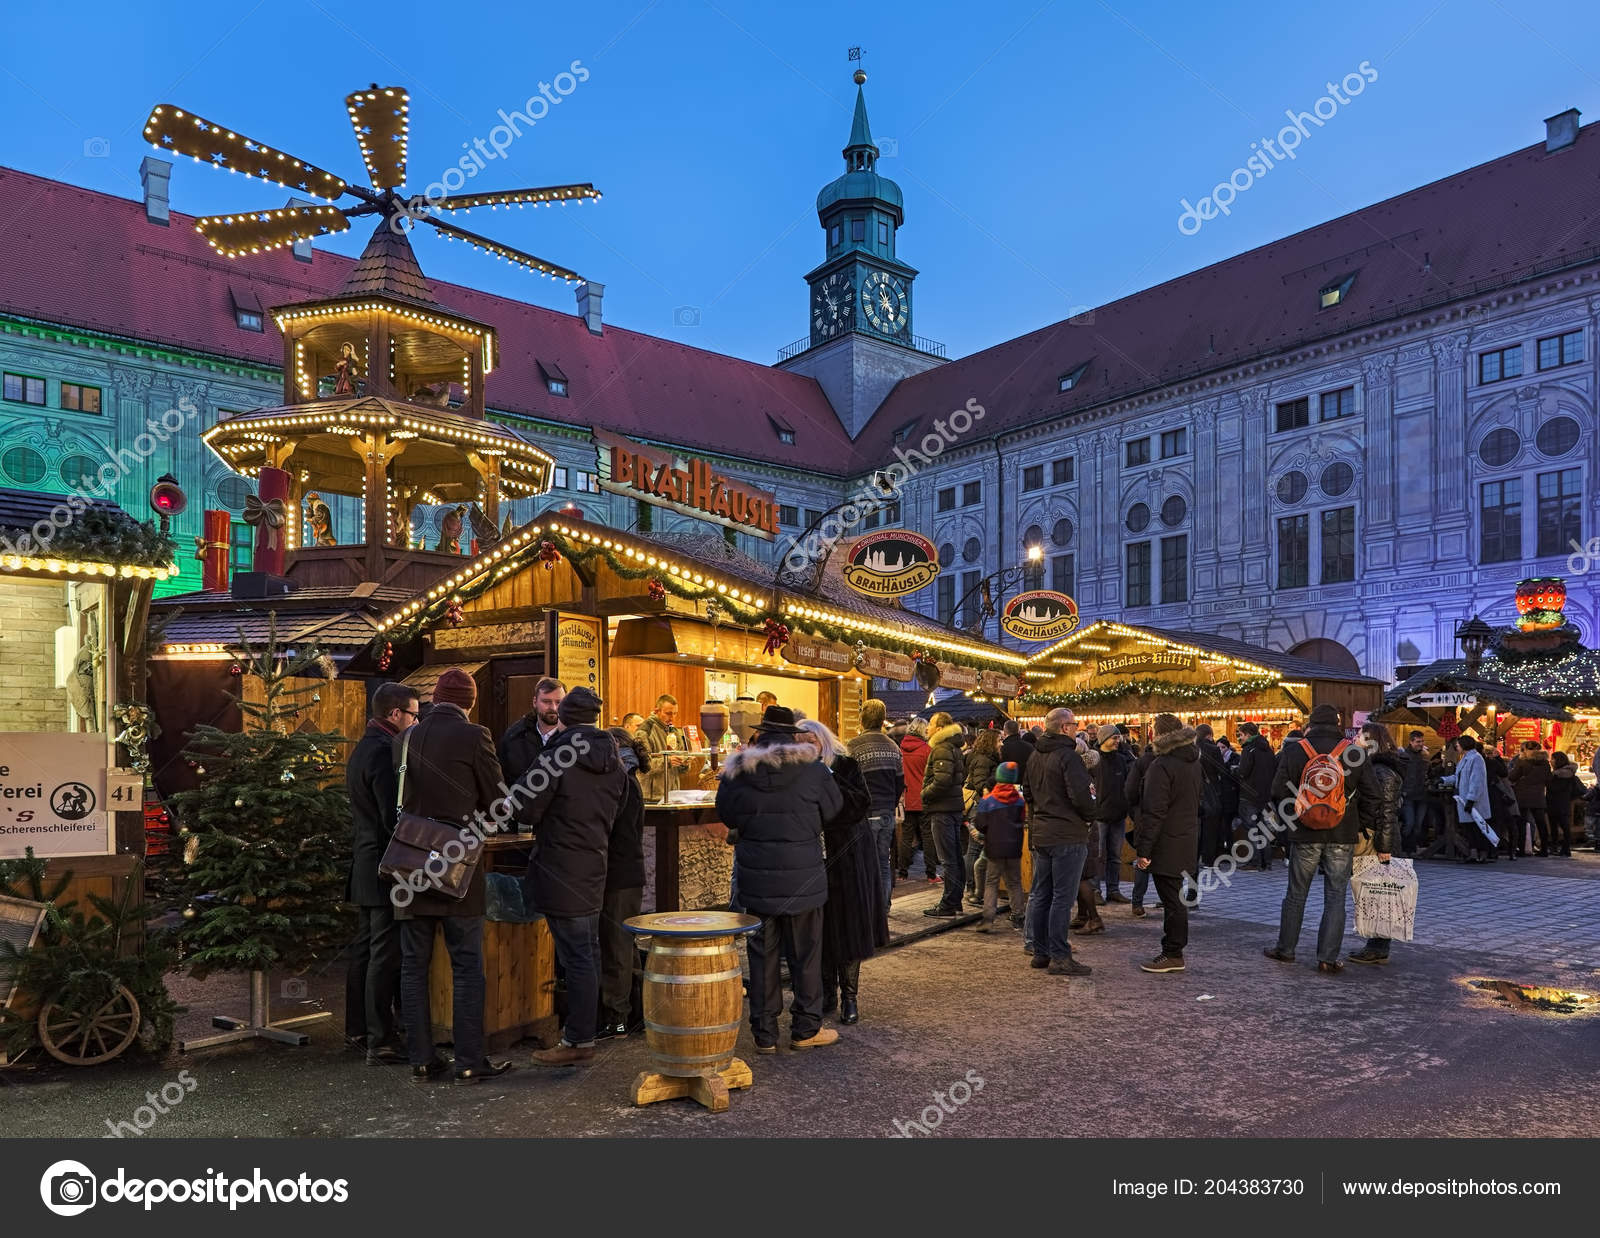 Christmas Village In Germany.Munich Germany December 2017 Christmas Village Emperor Court